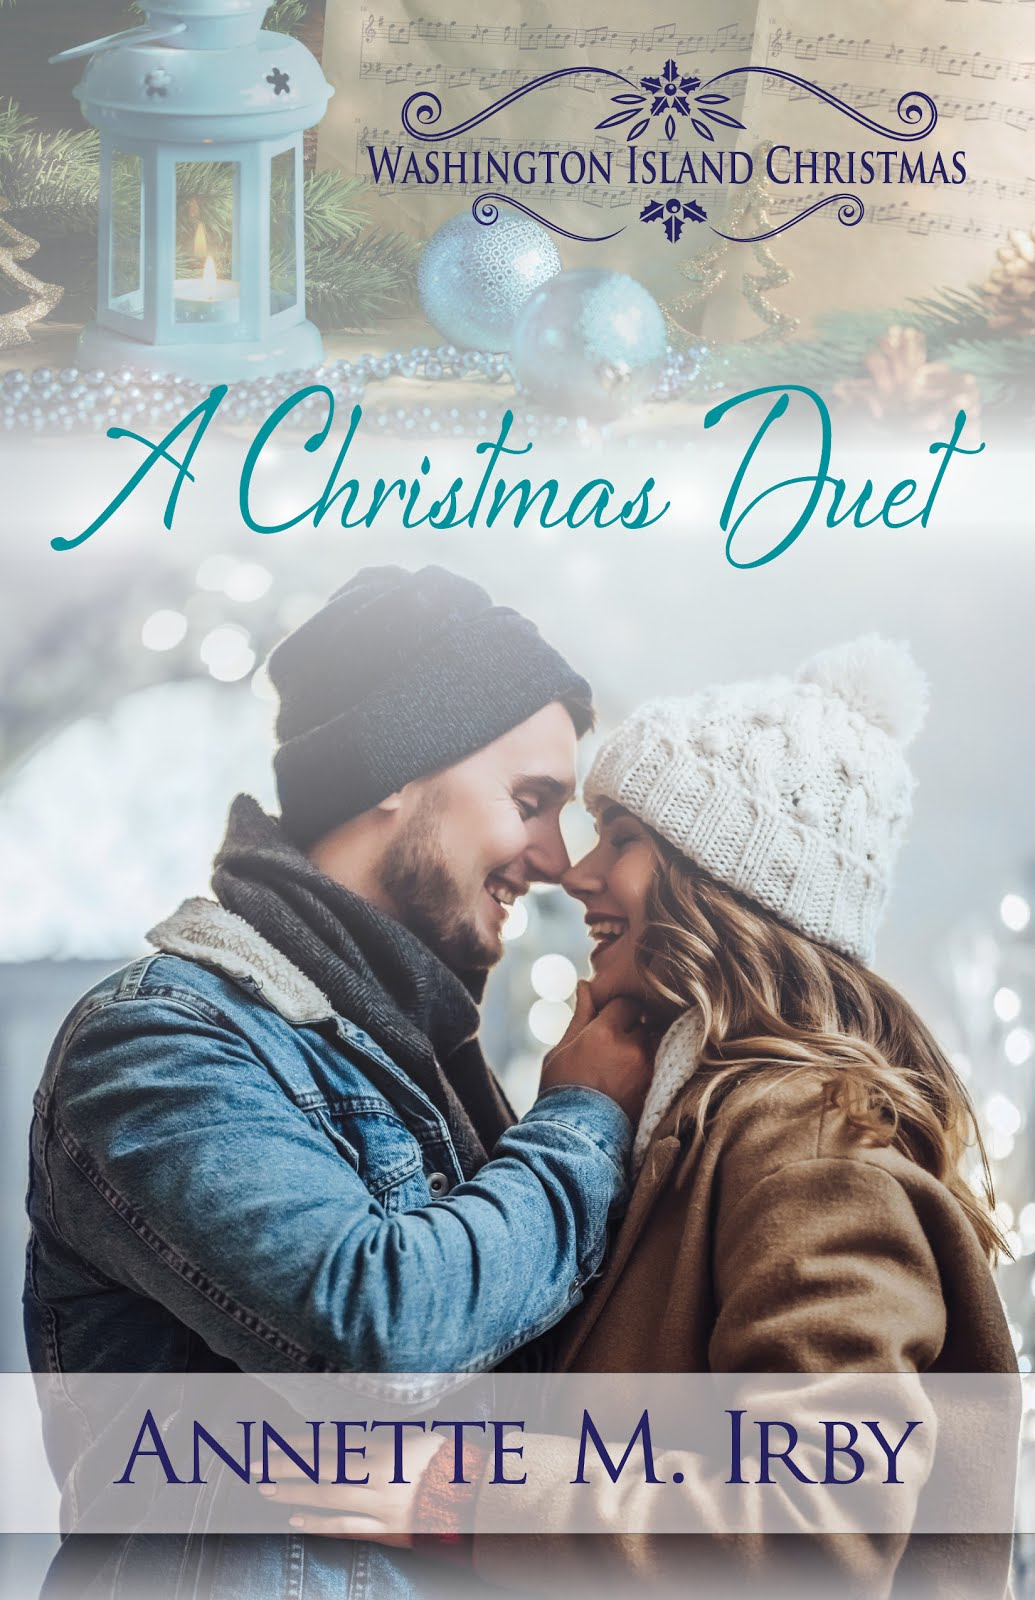 Washington Island Christmas novella, included in Melodies of Christmas Love collection